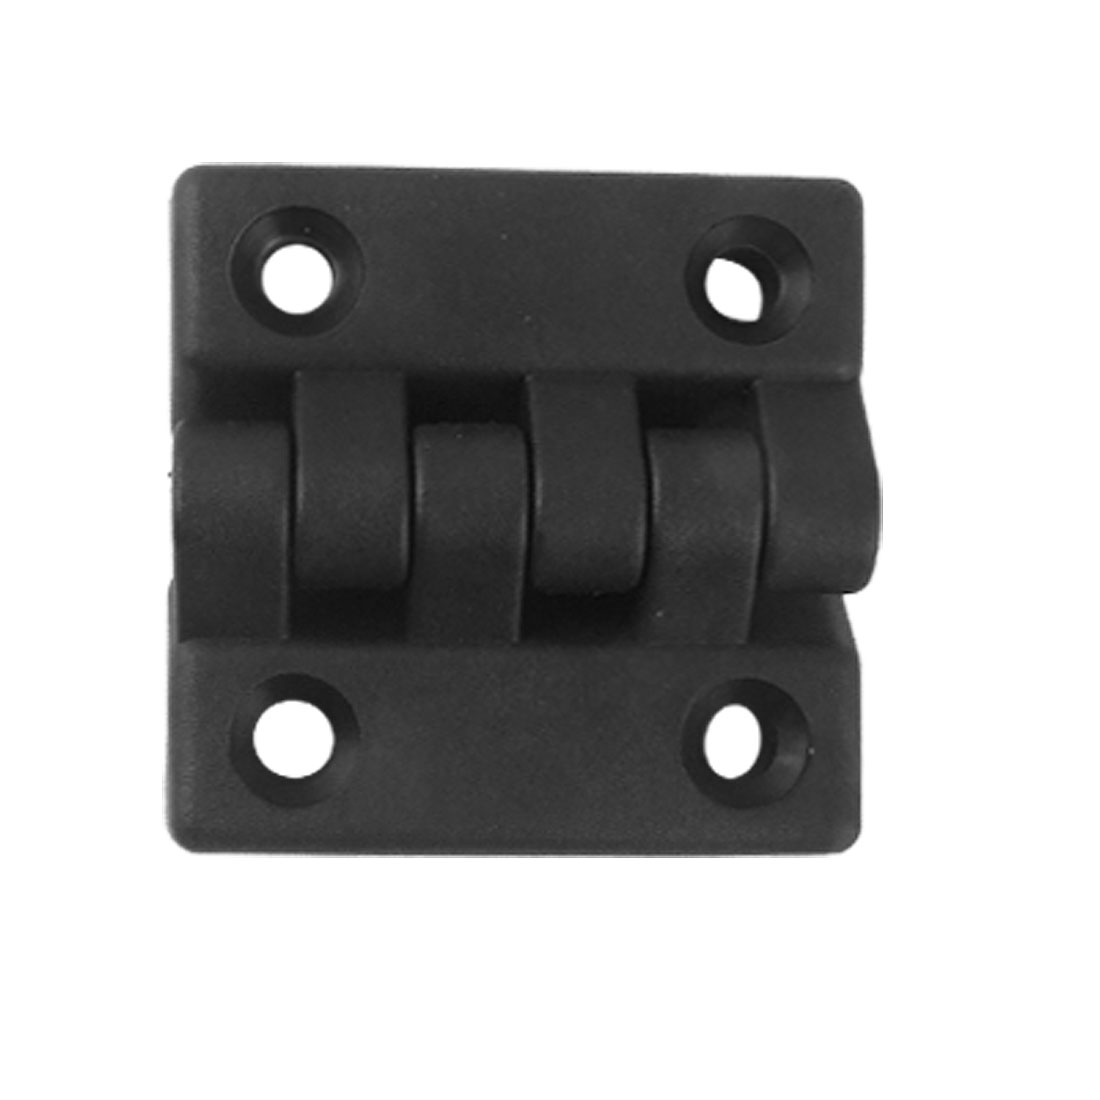 Reinforced Black Plastic Countersunk Hole Butt Hinge